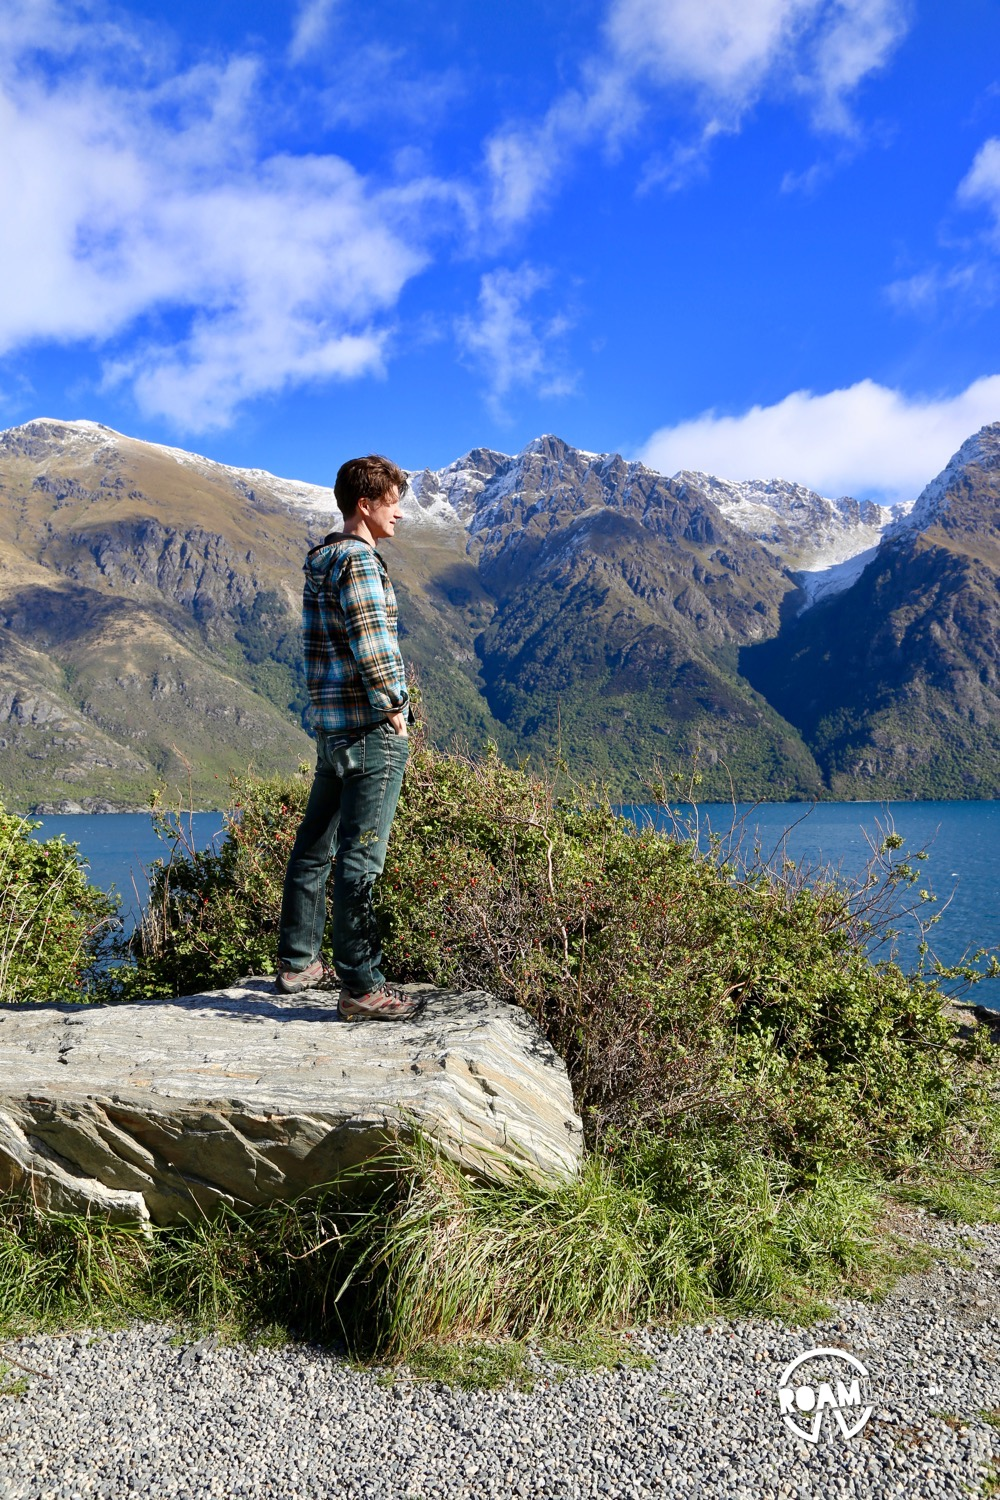 From Te Anau, we launch on the 4 hour drive to Queenstown. It was hard to get there in a reasonable amount of time, however, with such brilliant vistas.